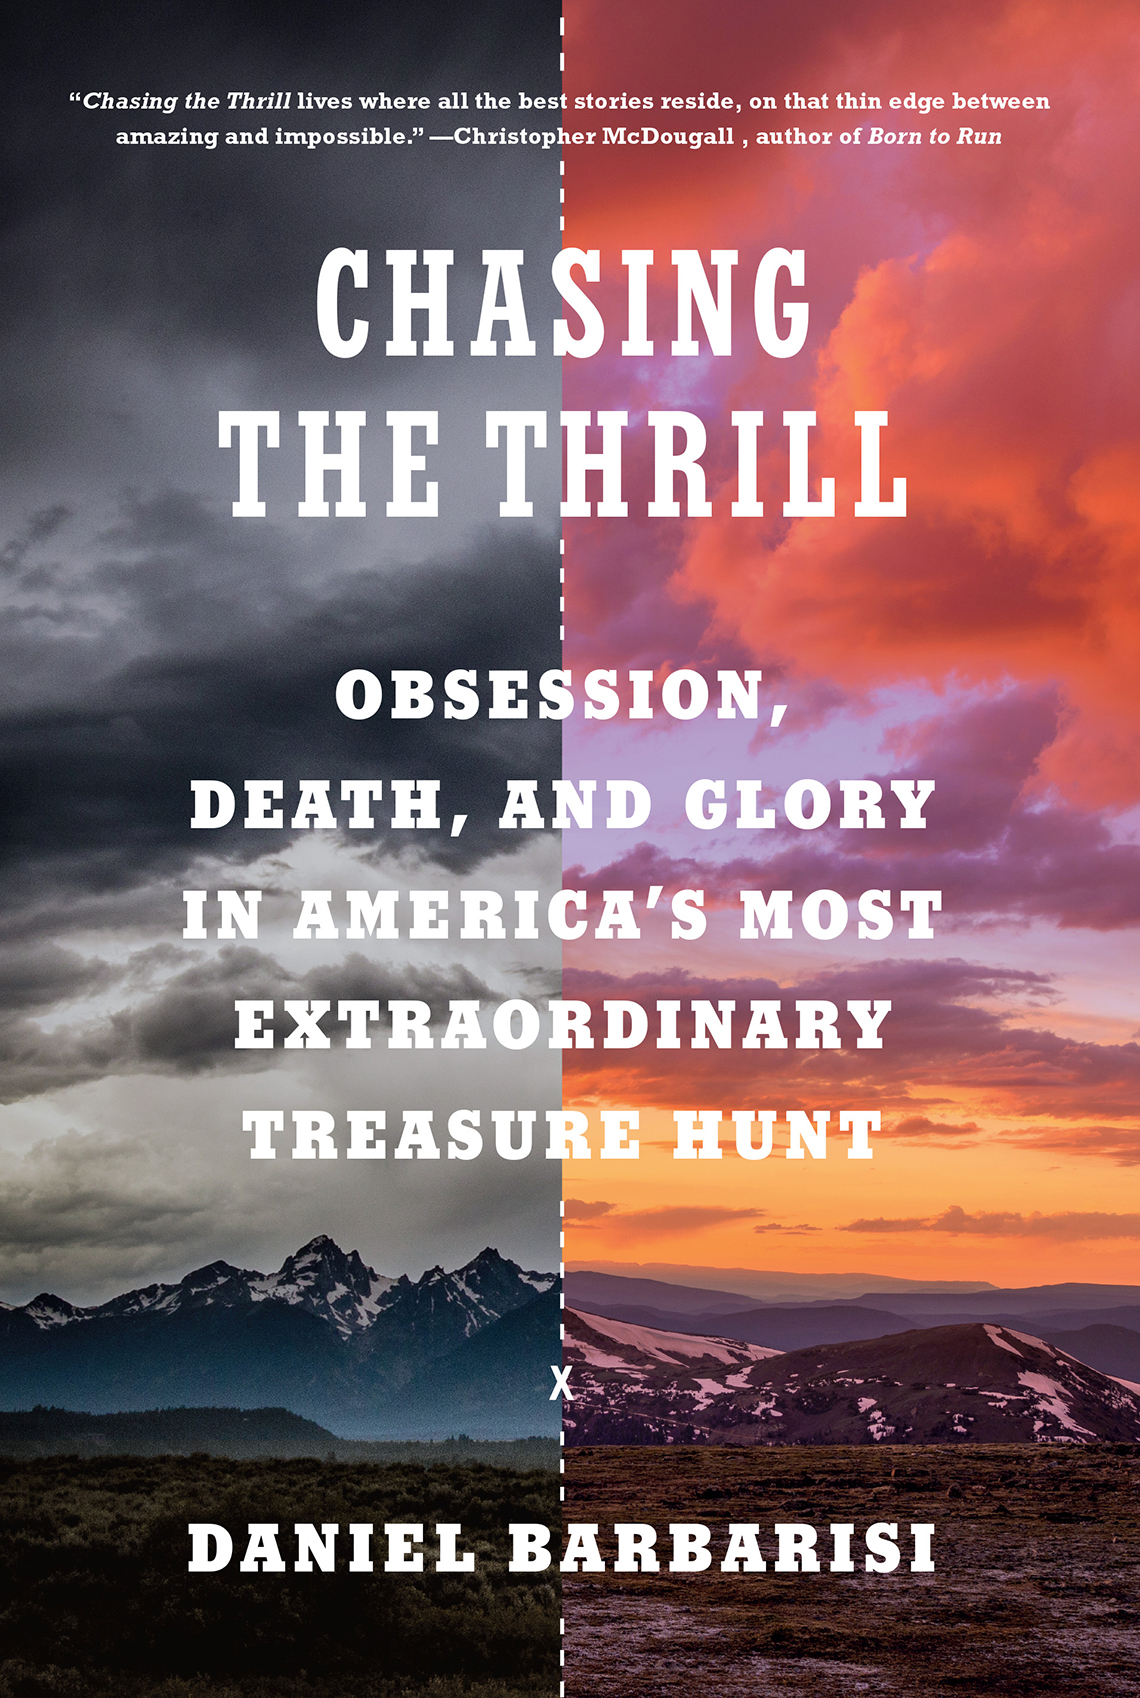 chasing the thrill obsession death and glory in americas most extraordinary treasure hunt by daniel barbarisi